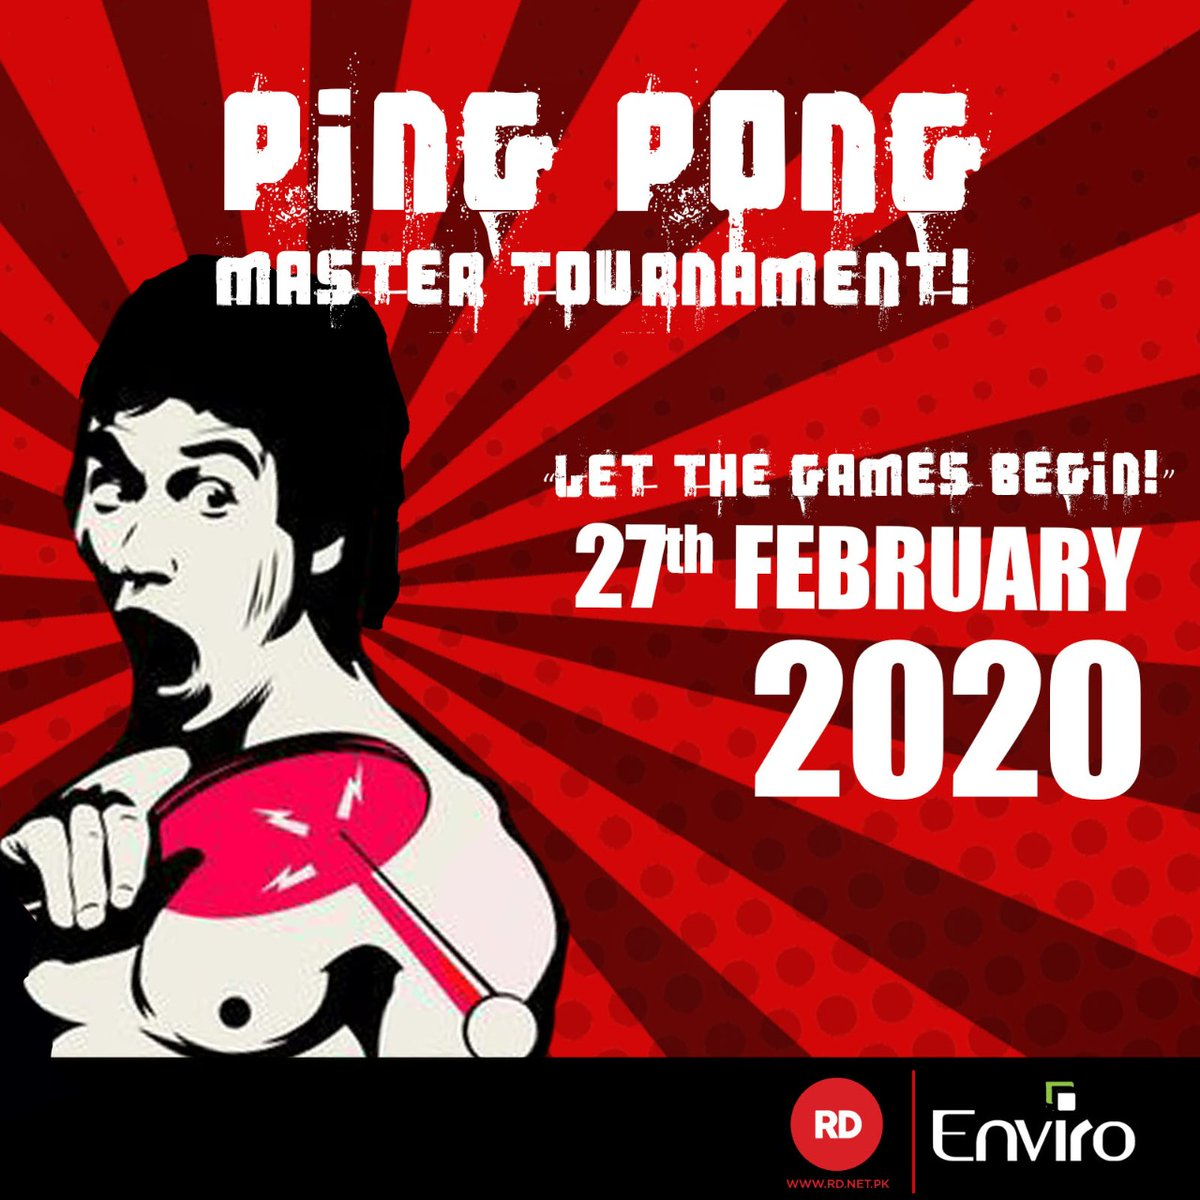 Stay Tuned People. RD Ping Pong Tournament is around the corner. Let's see which players have crowned RD Ping Pong Masters :D  #RD #PingPong #TableTennis #Sports #tournament #HonoringHighAchievers #corporate #worklife #funatwork #work #Brand #fun